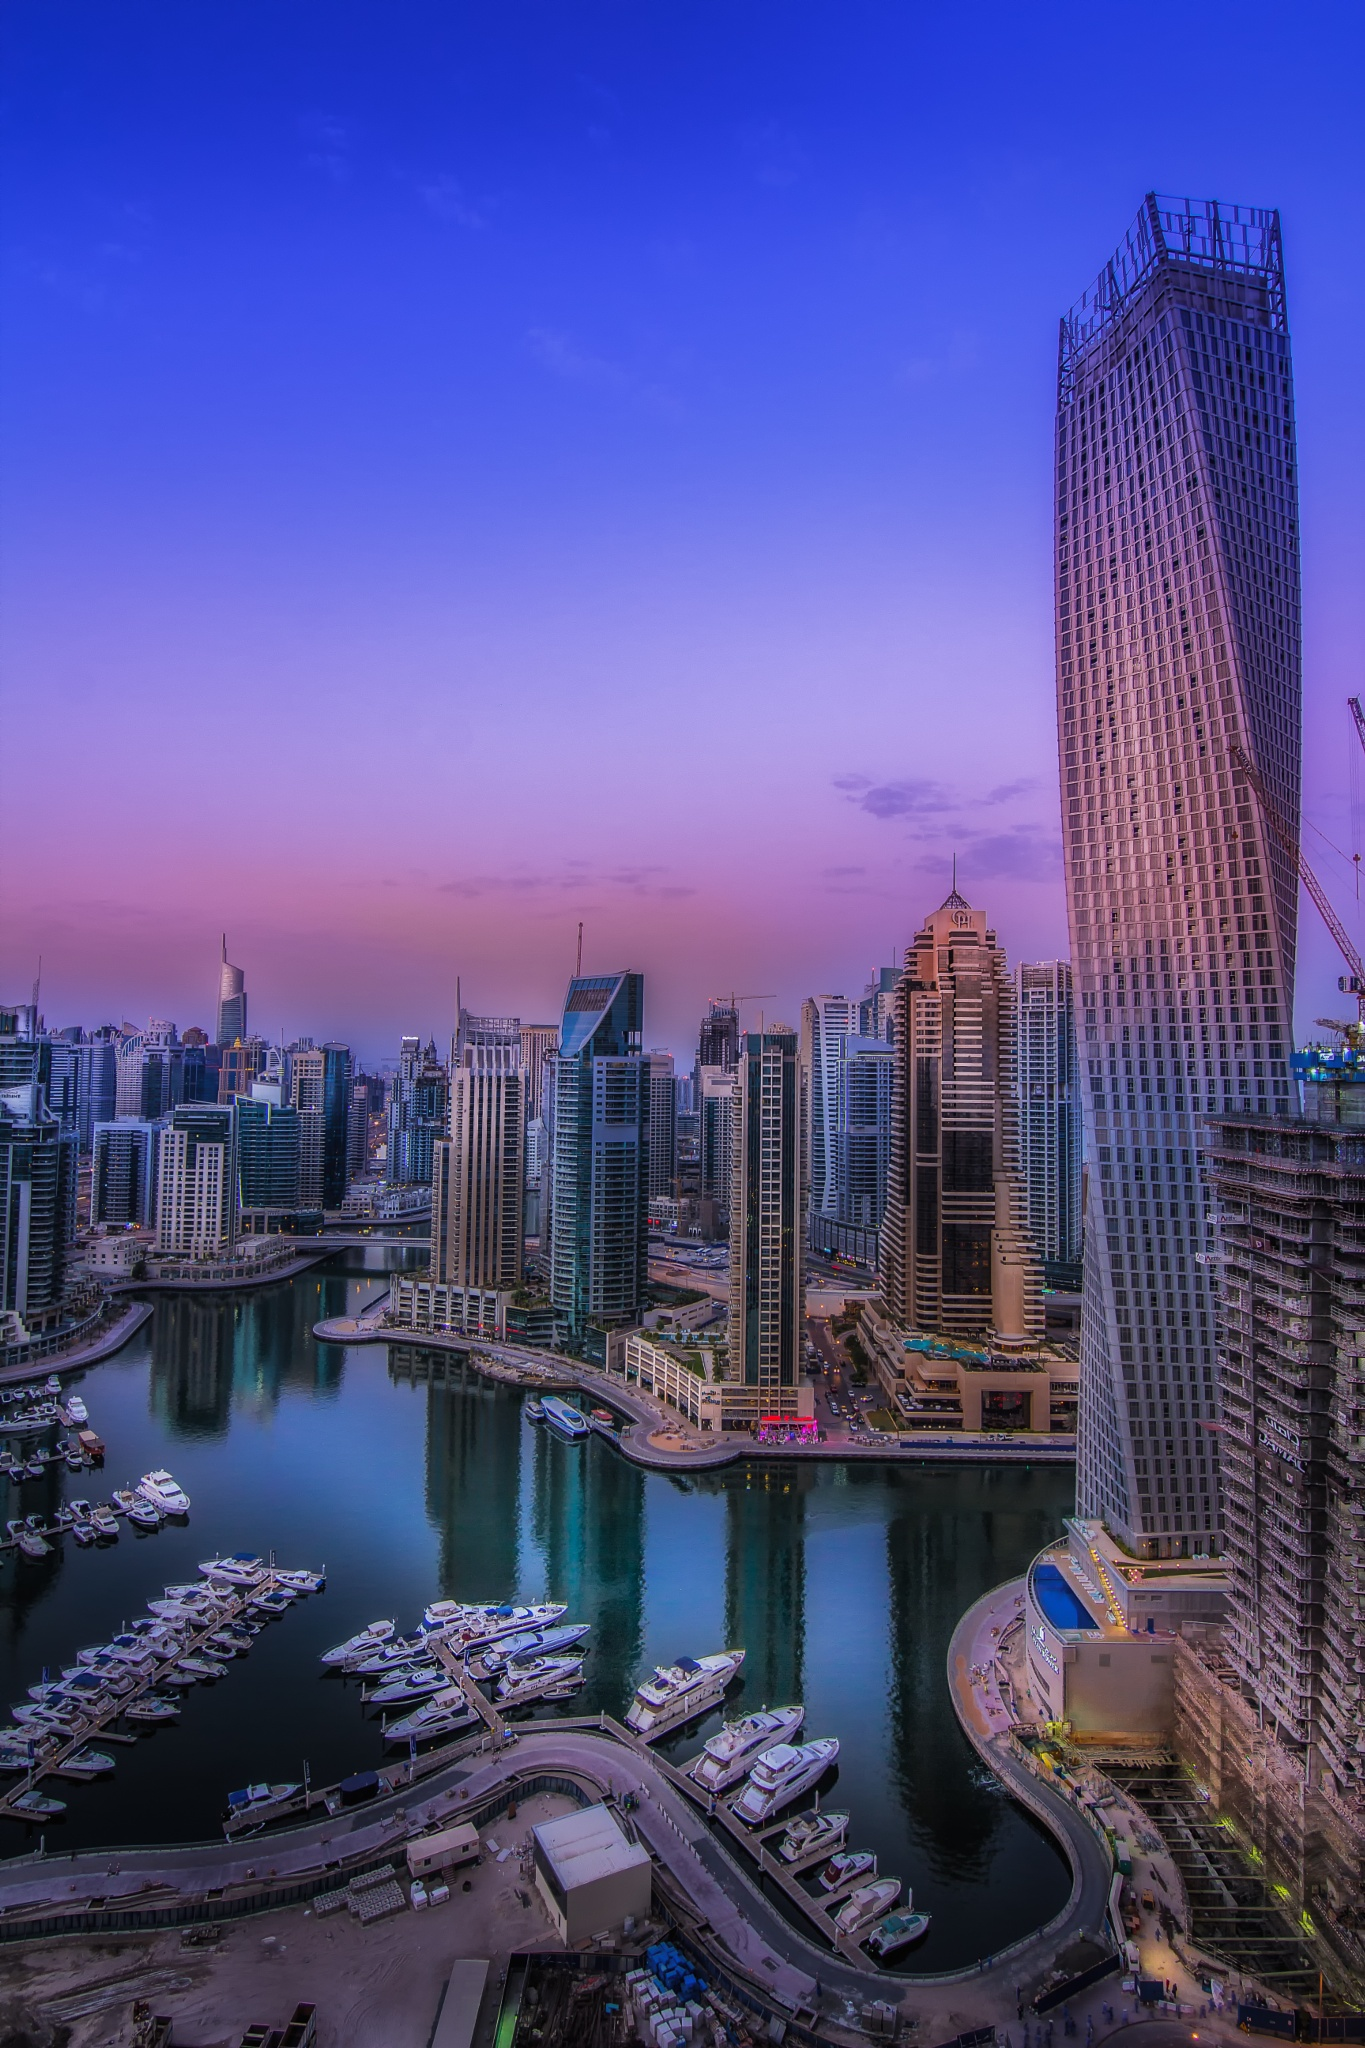 Another view looking down Dubai Marina by Damon